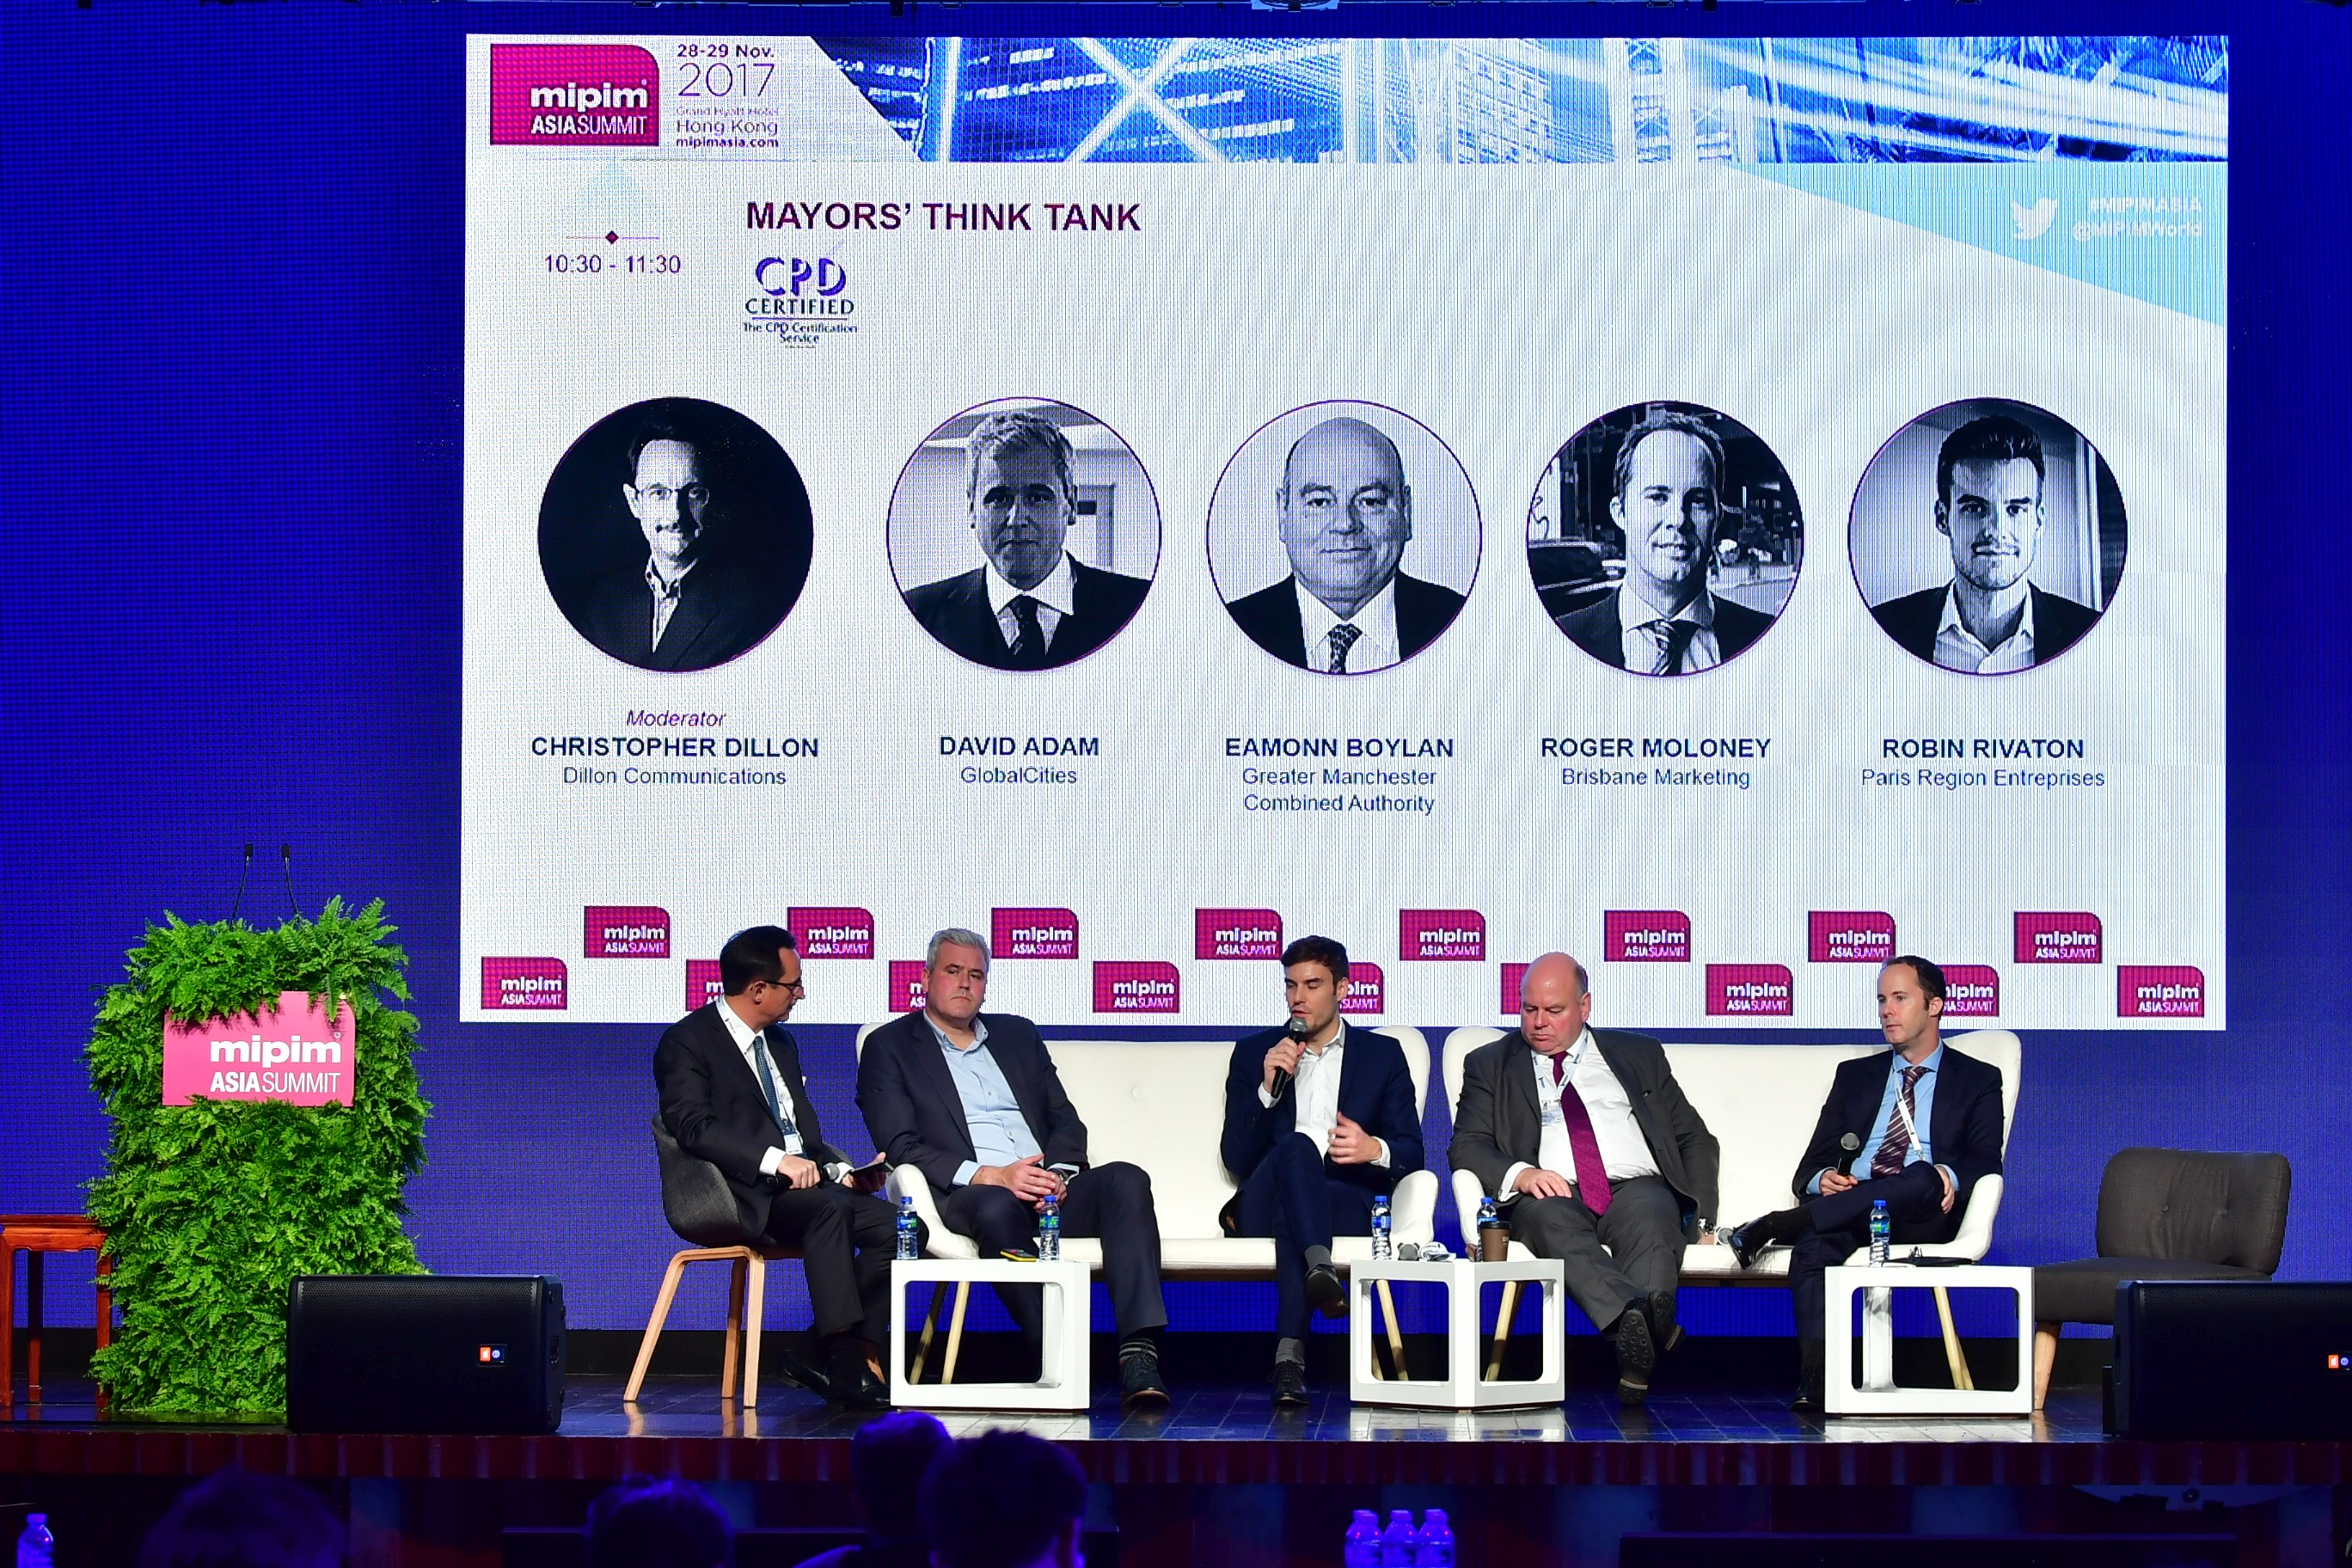 The Mayors' Think Tank at the MIPIM Asia Summit